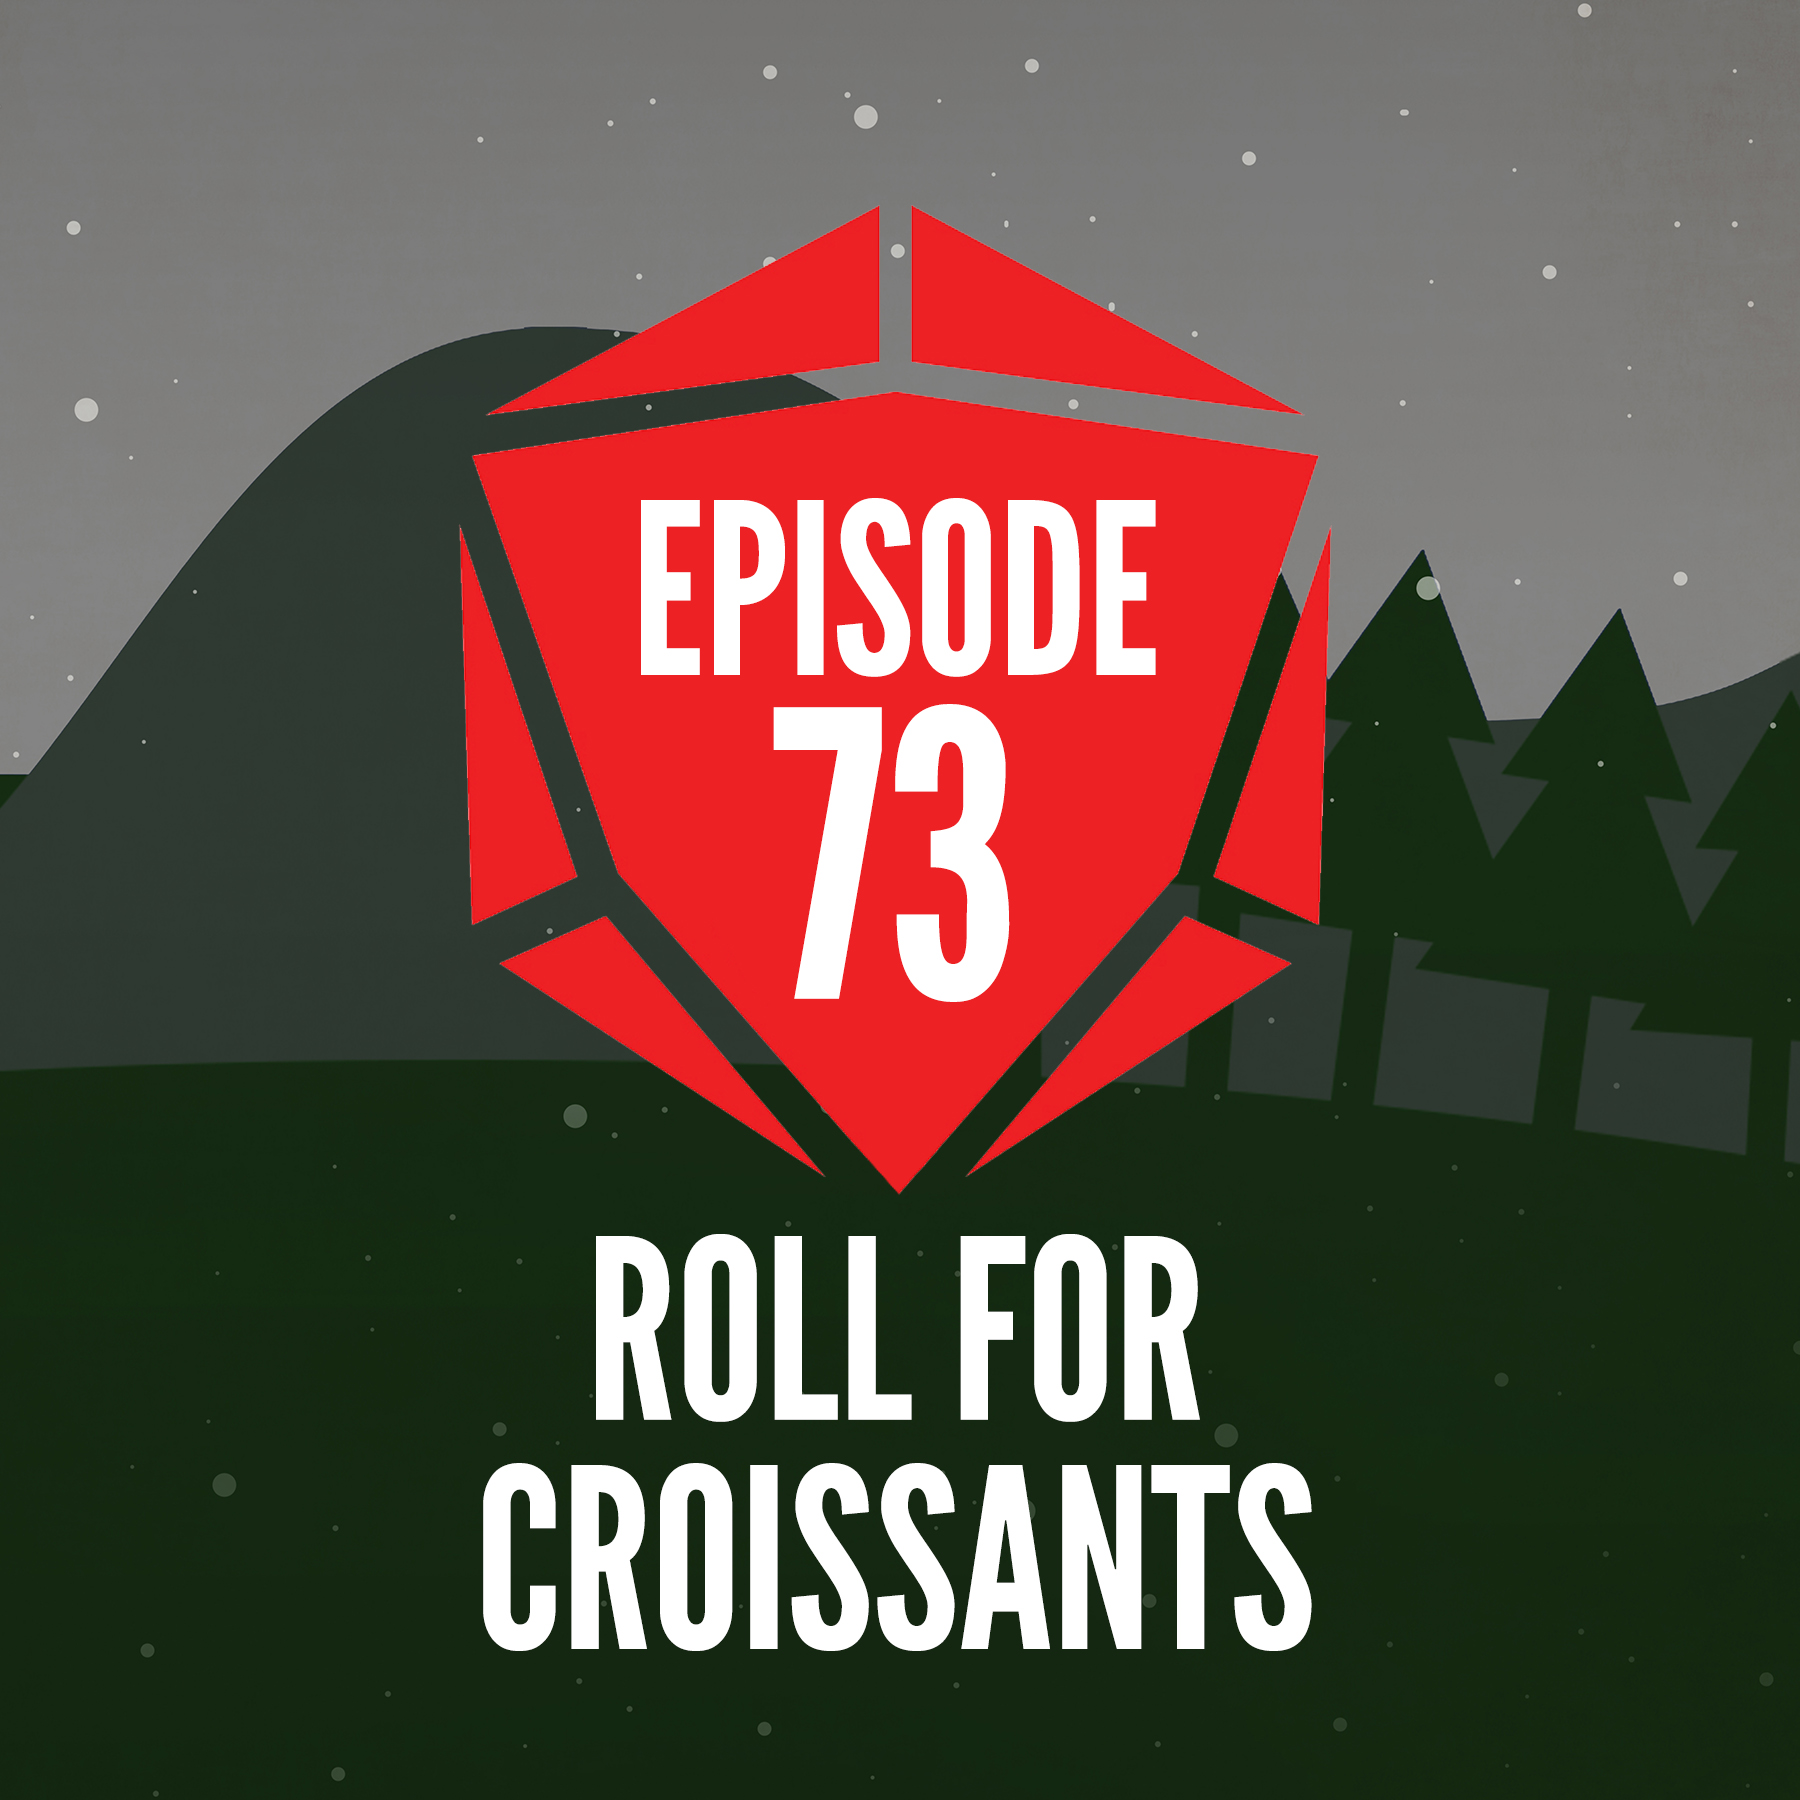 Episode 73: Roll For Croissants